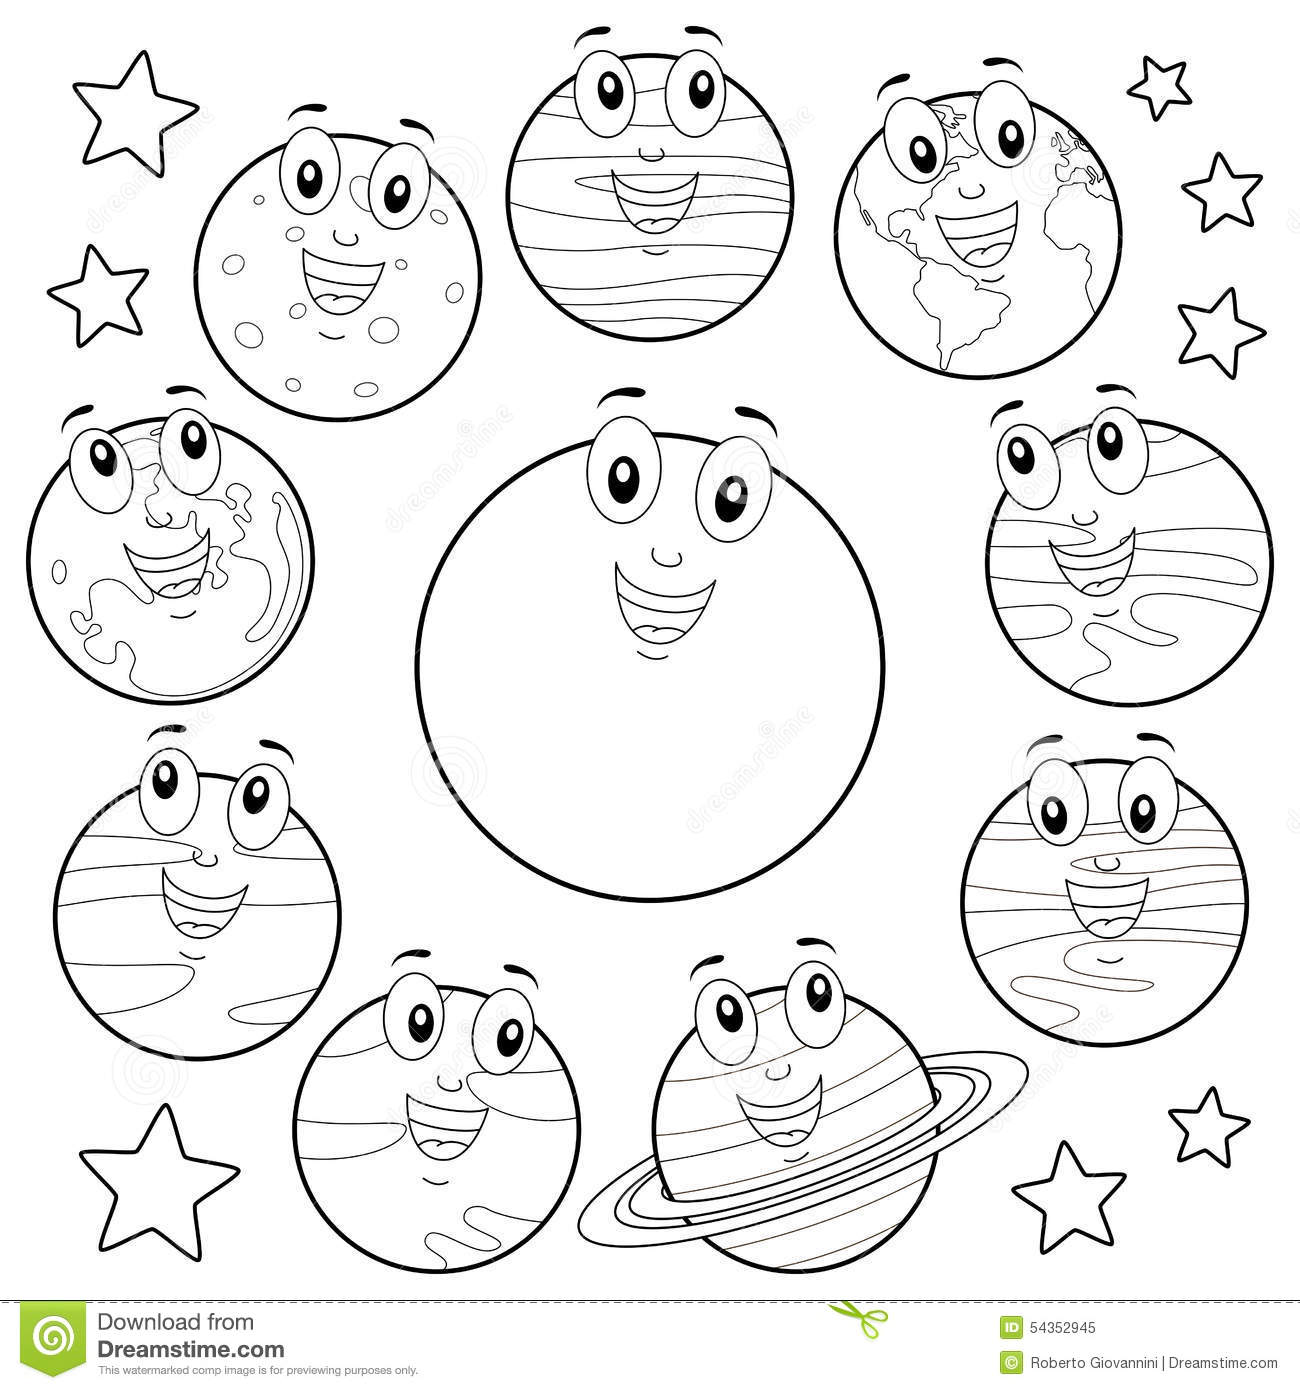 coloring cartoon planets with sun moon - Planets Coloring Pages